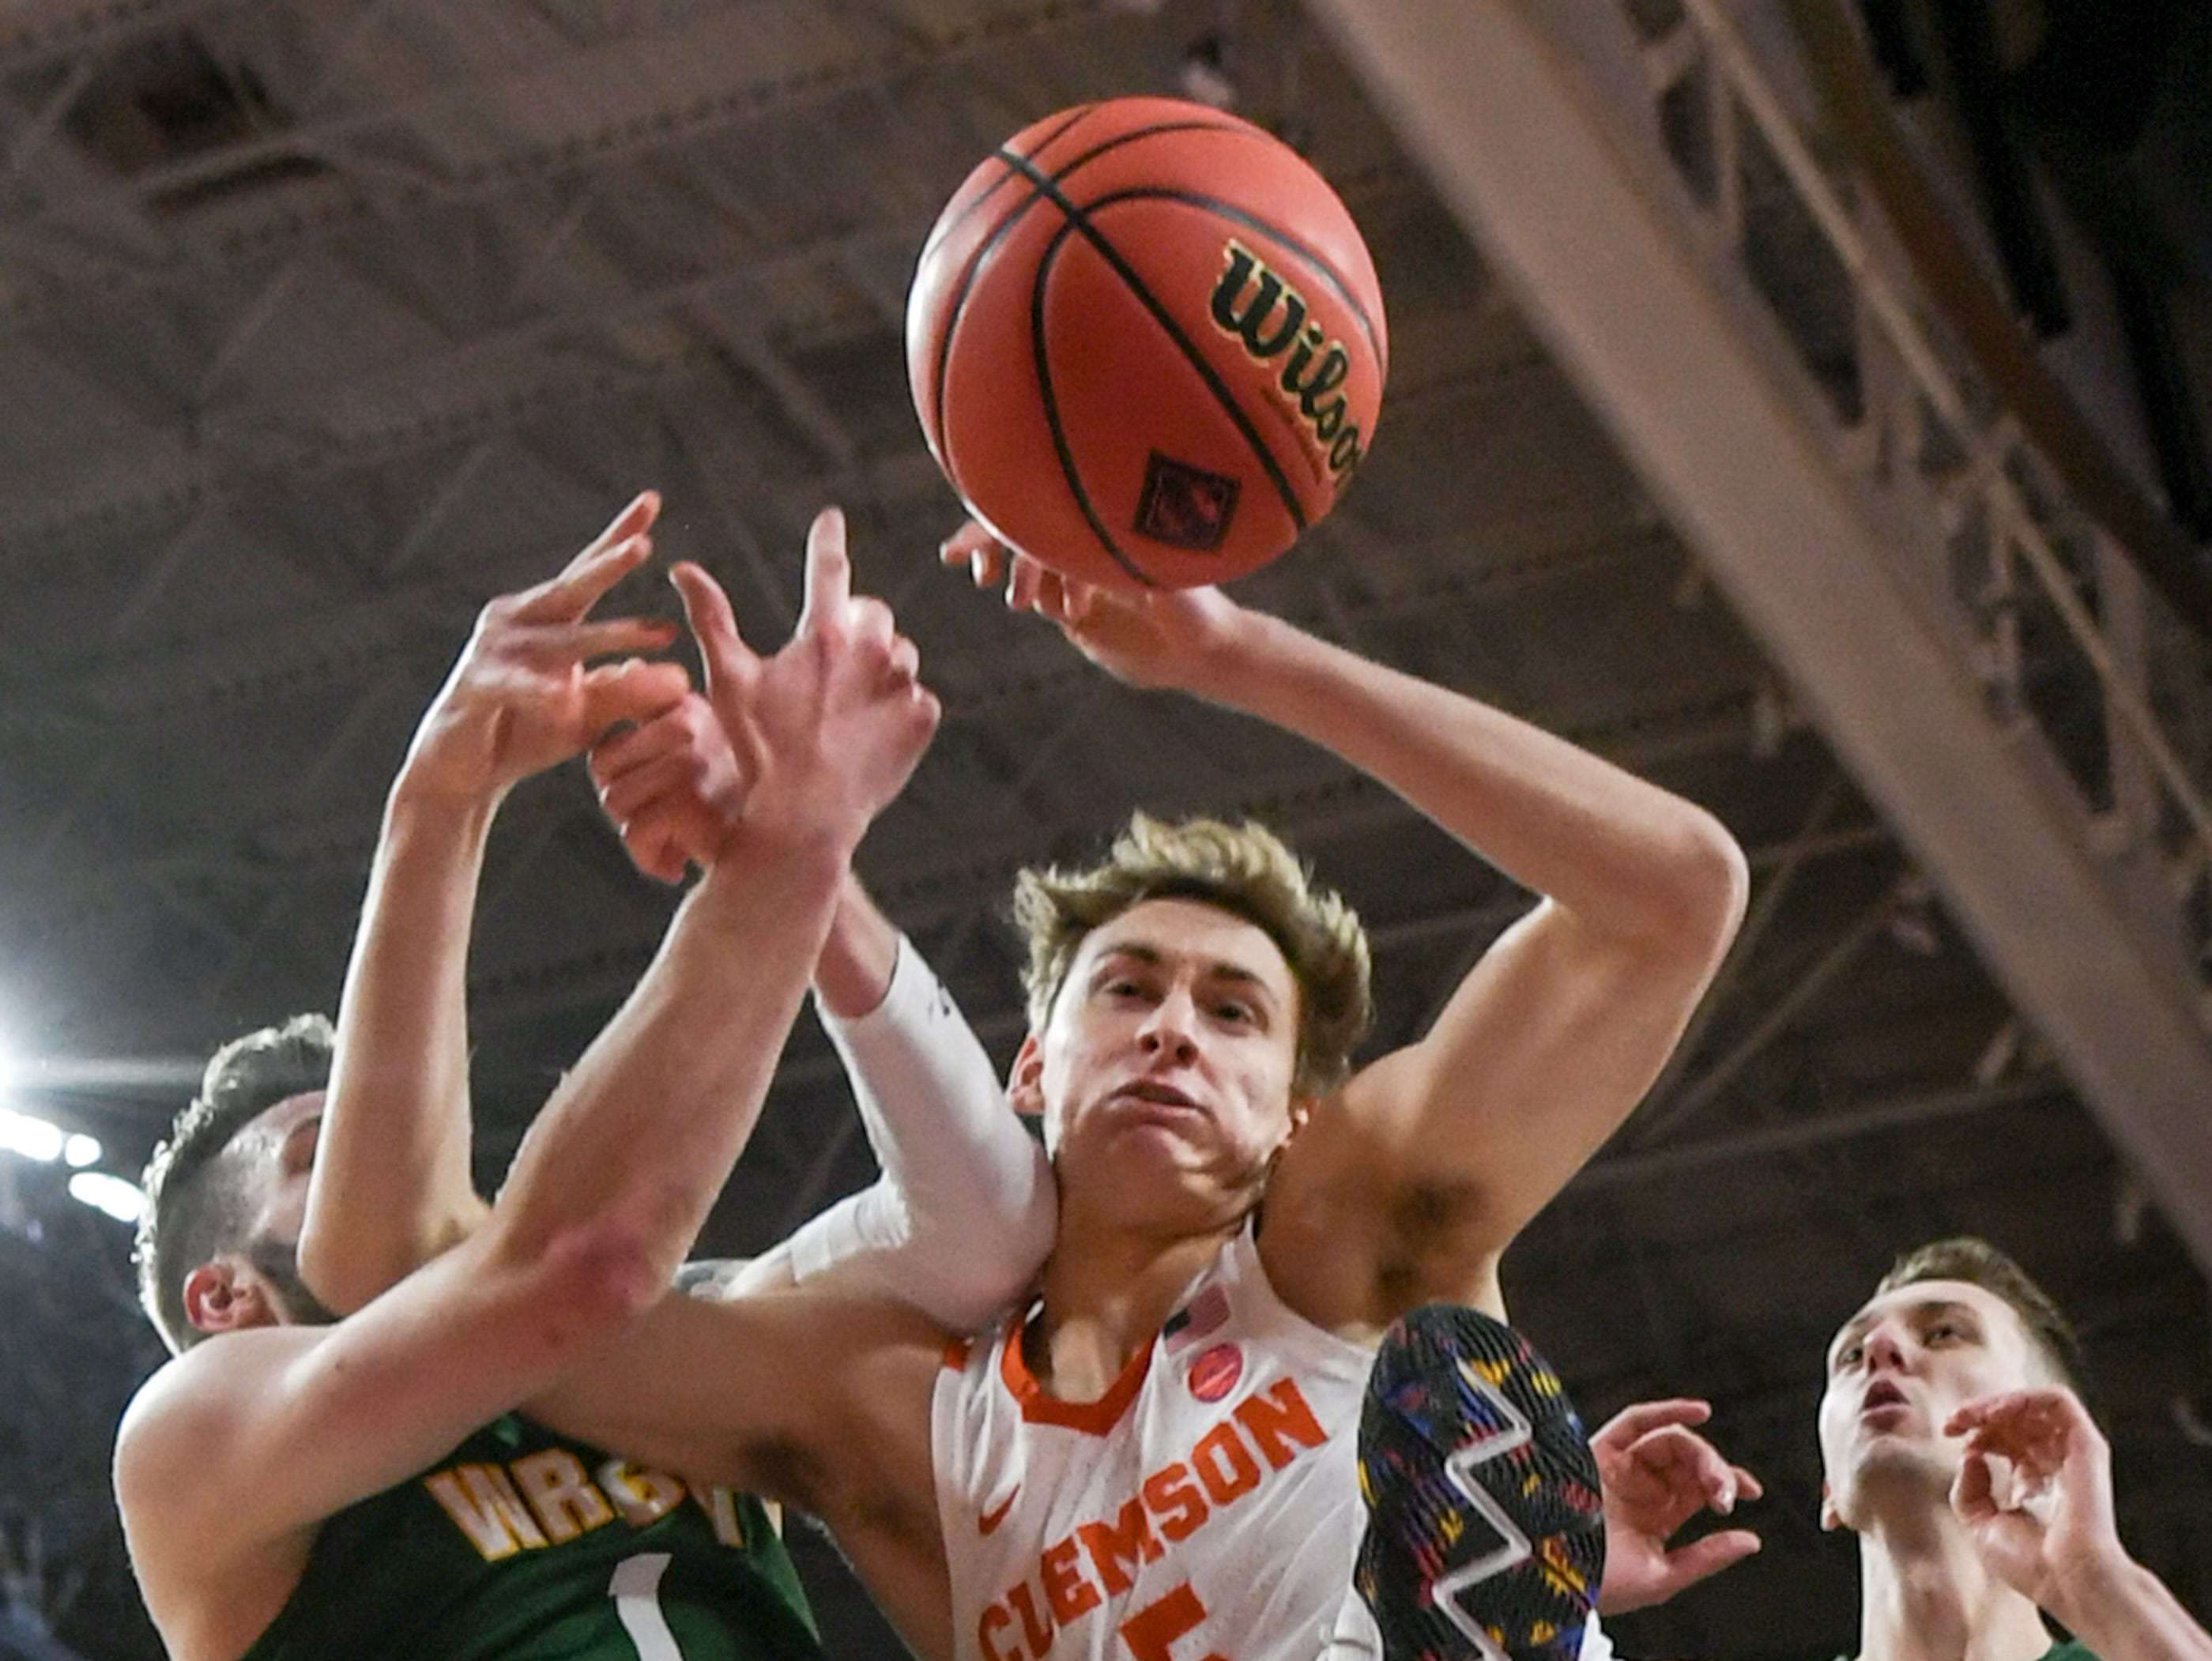 Clemson forward Hunter Tyson(5) and Wright State forward Bill Wampler(1) get tangled over a loose ball during the first half of the NIT at Littlejohn Coliseum in Clemson Tuesday, March 19, 2019.